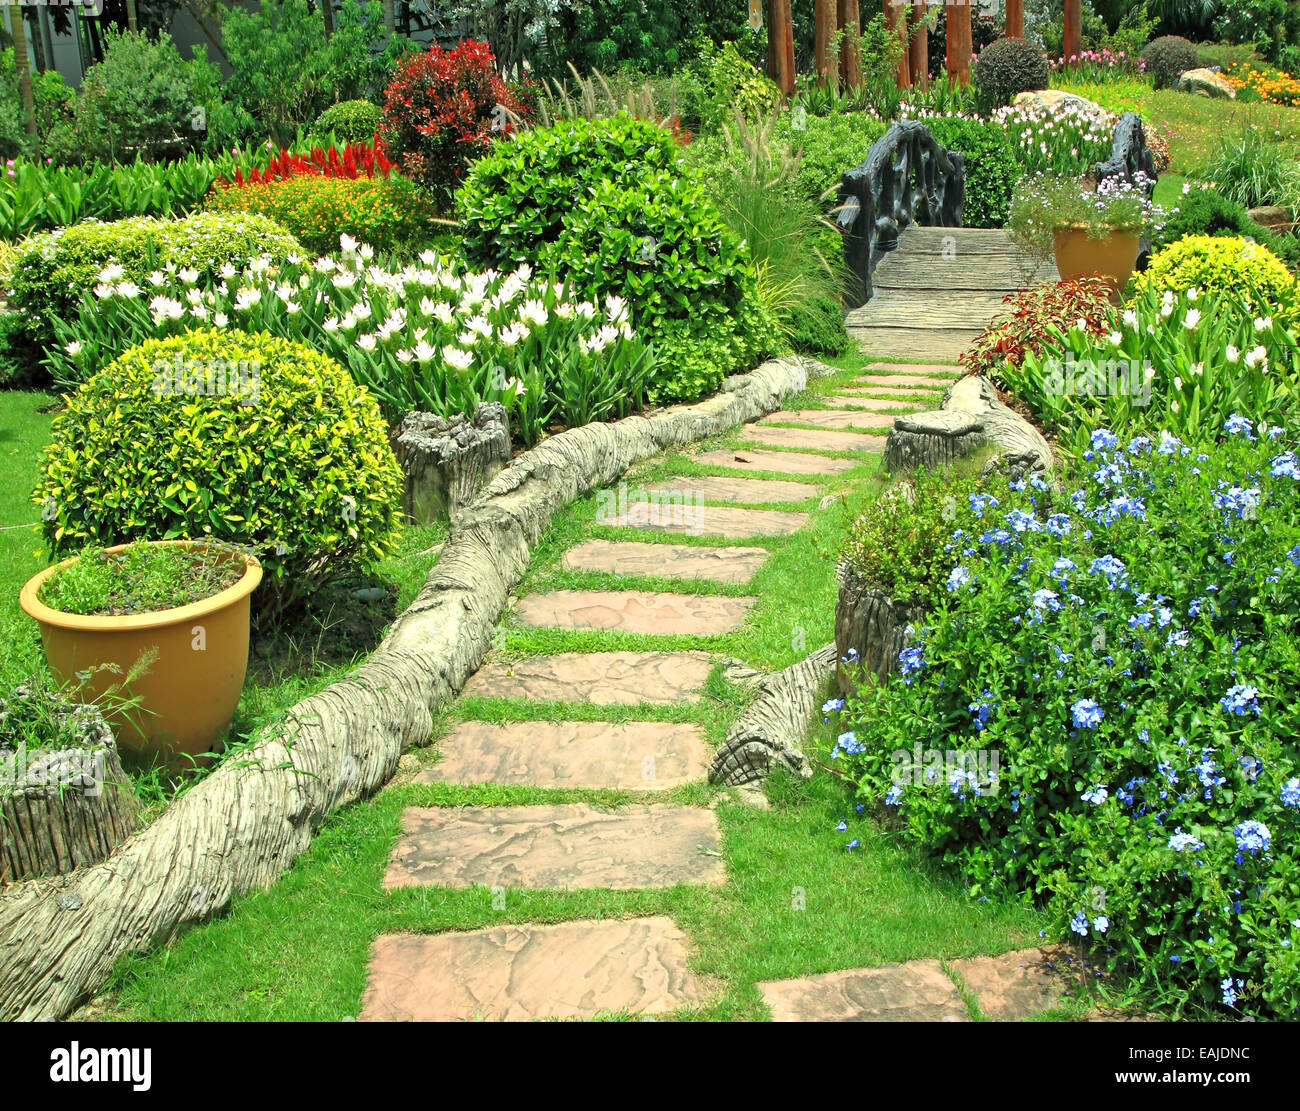 natural green flower garden this forms the background stock photo alamy https www alamy com stock photo natural green flower garden this forms the background 75393960 html